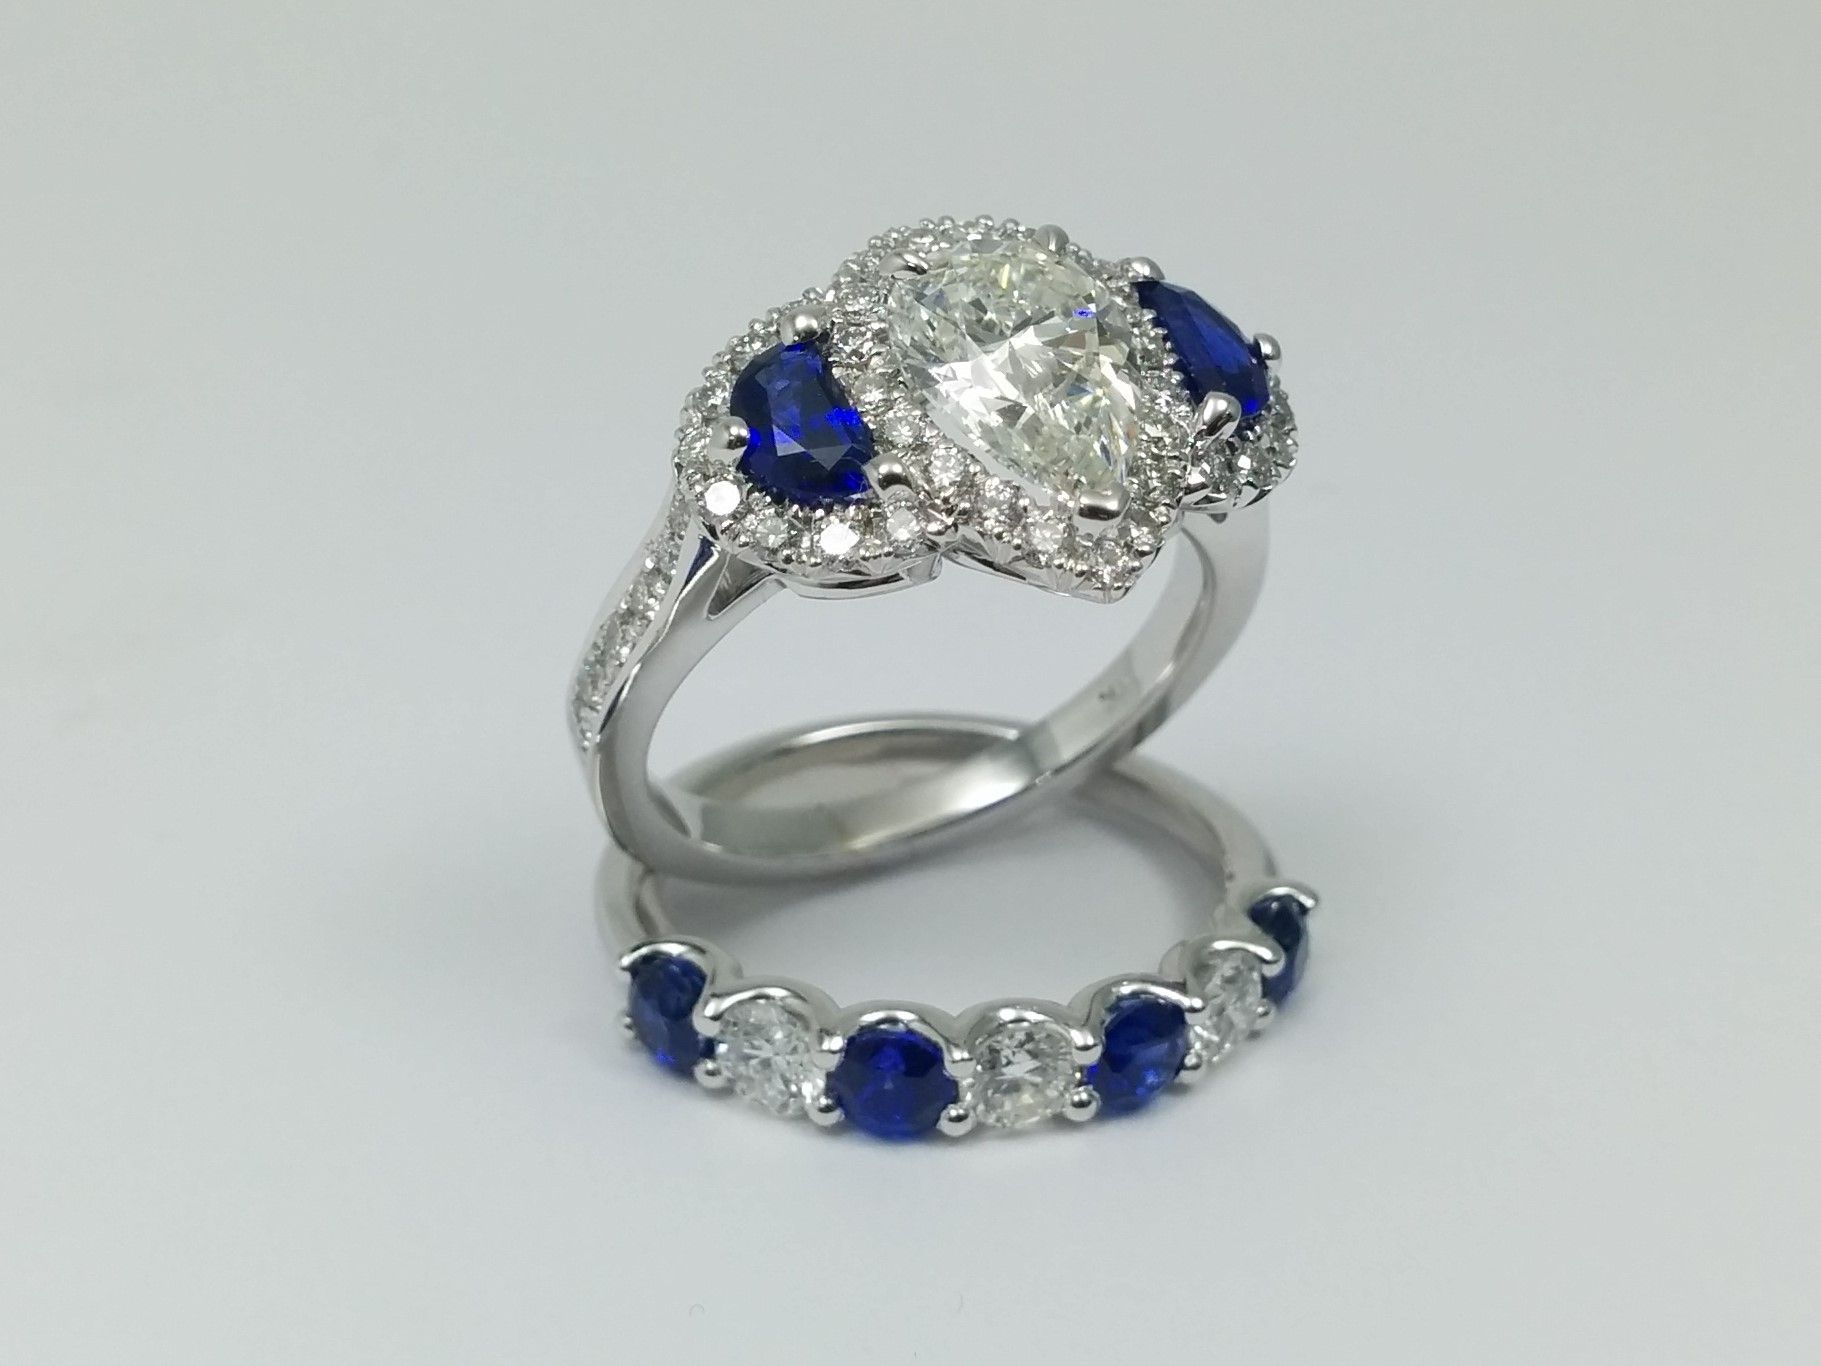 Engagement Ring Pear Shaped Diamond Ring Half Moons Blue Sapphires